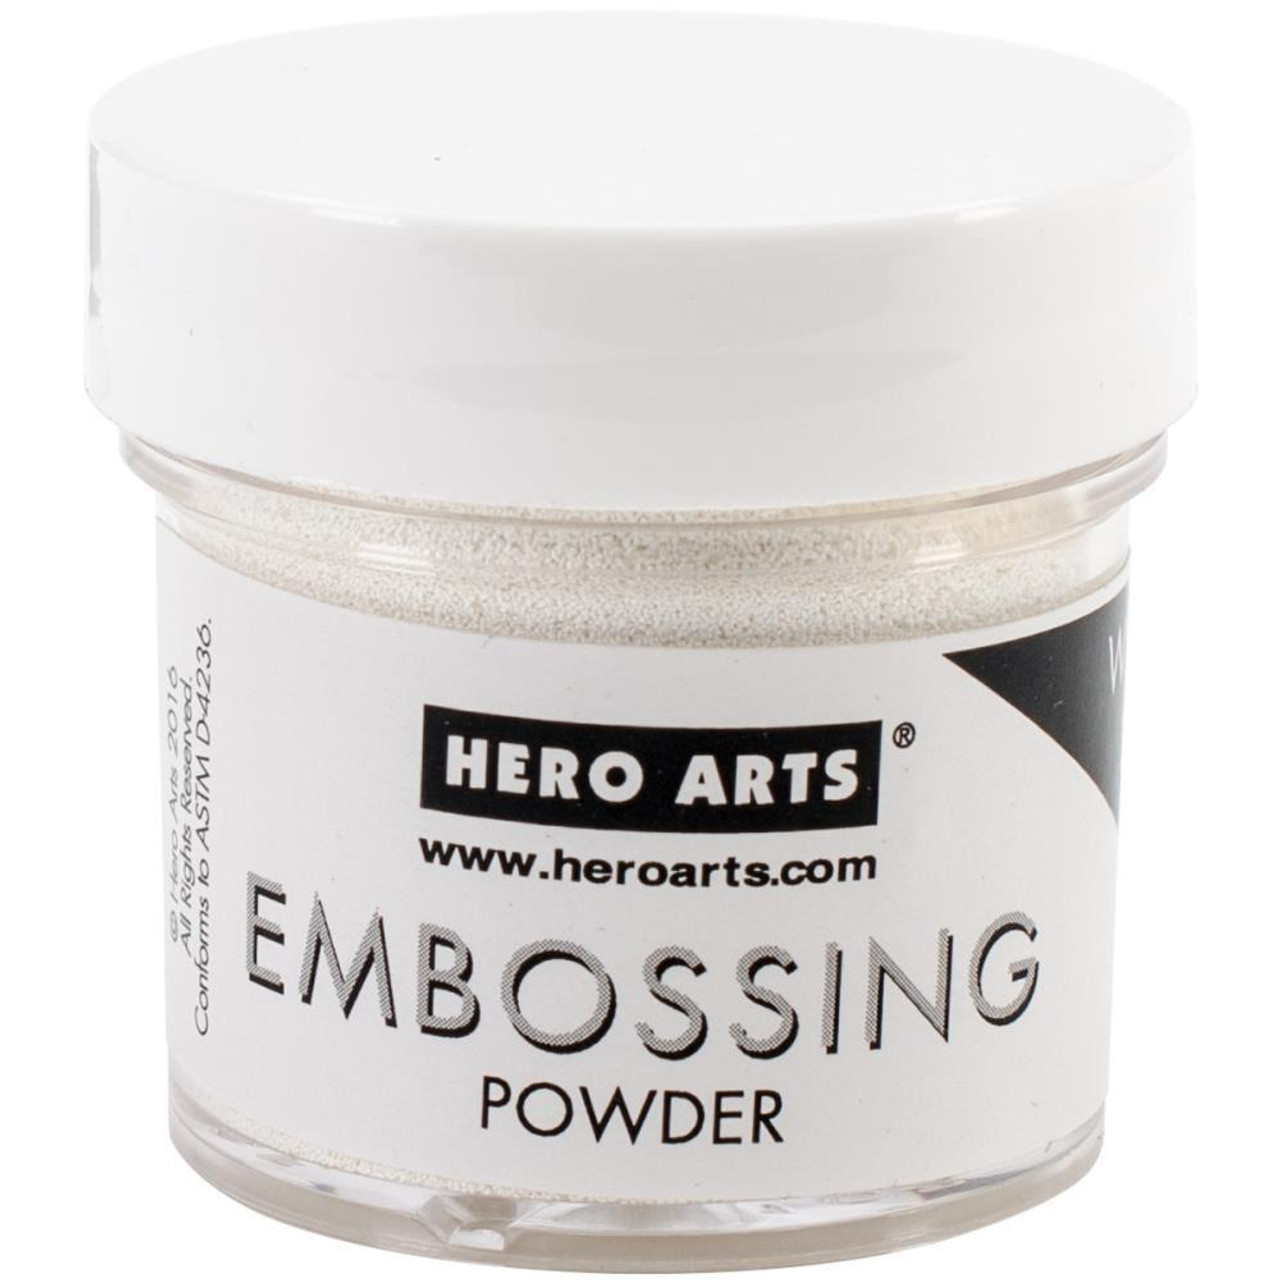 Hero Arts - Embossing Powder - White Puff